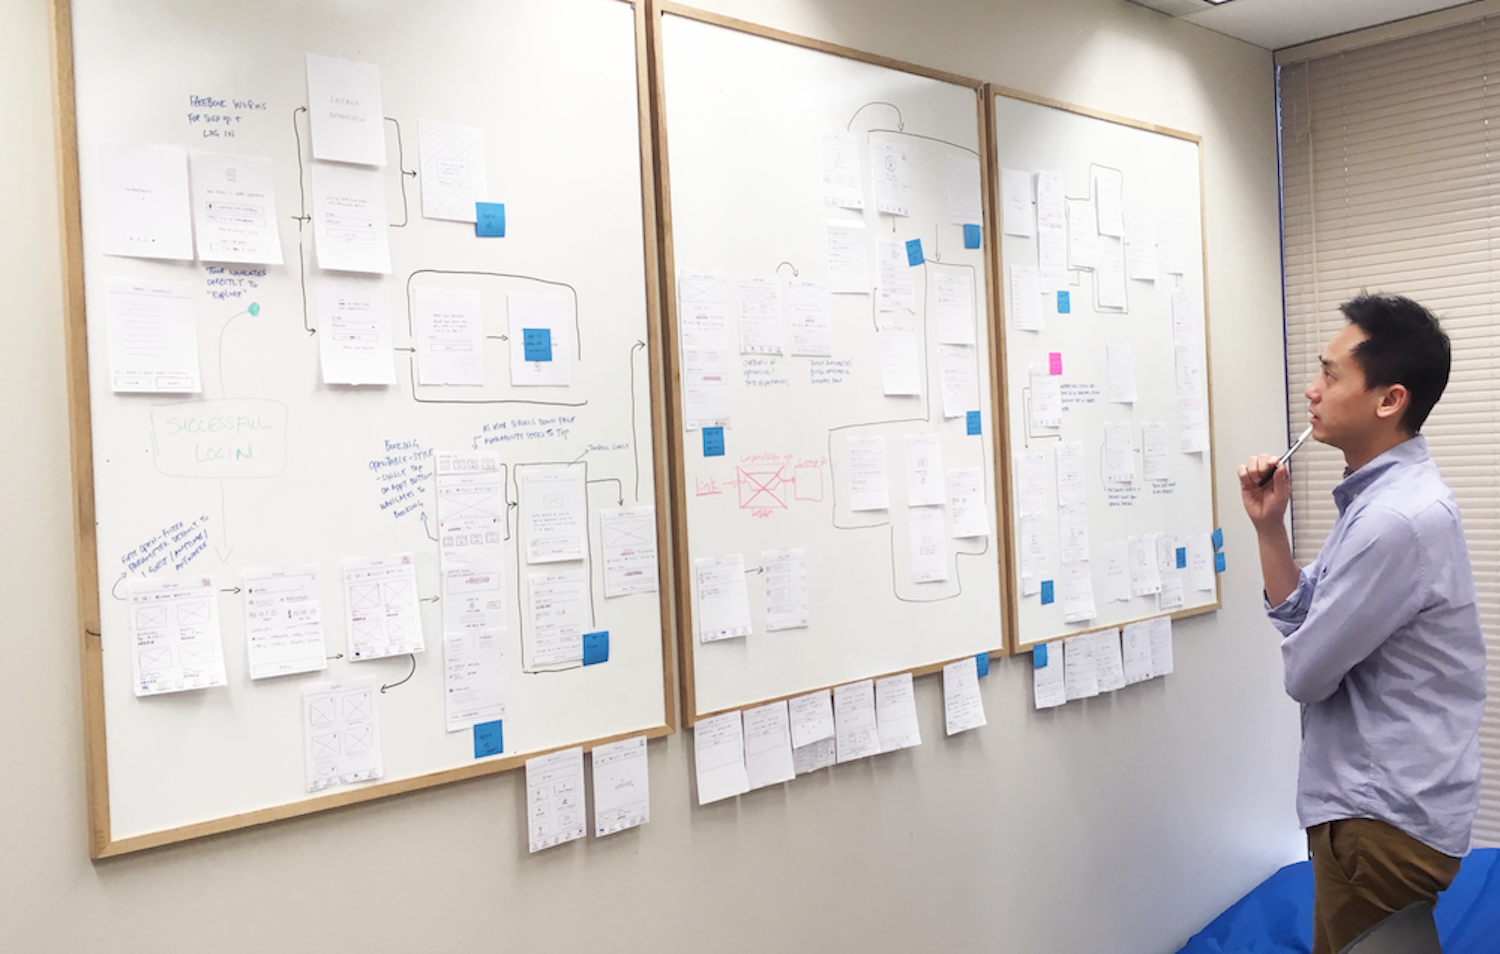 TTT Designer laying out wireframes on a whiteboard for Yervana app